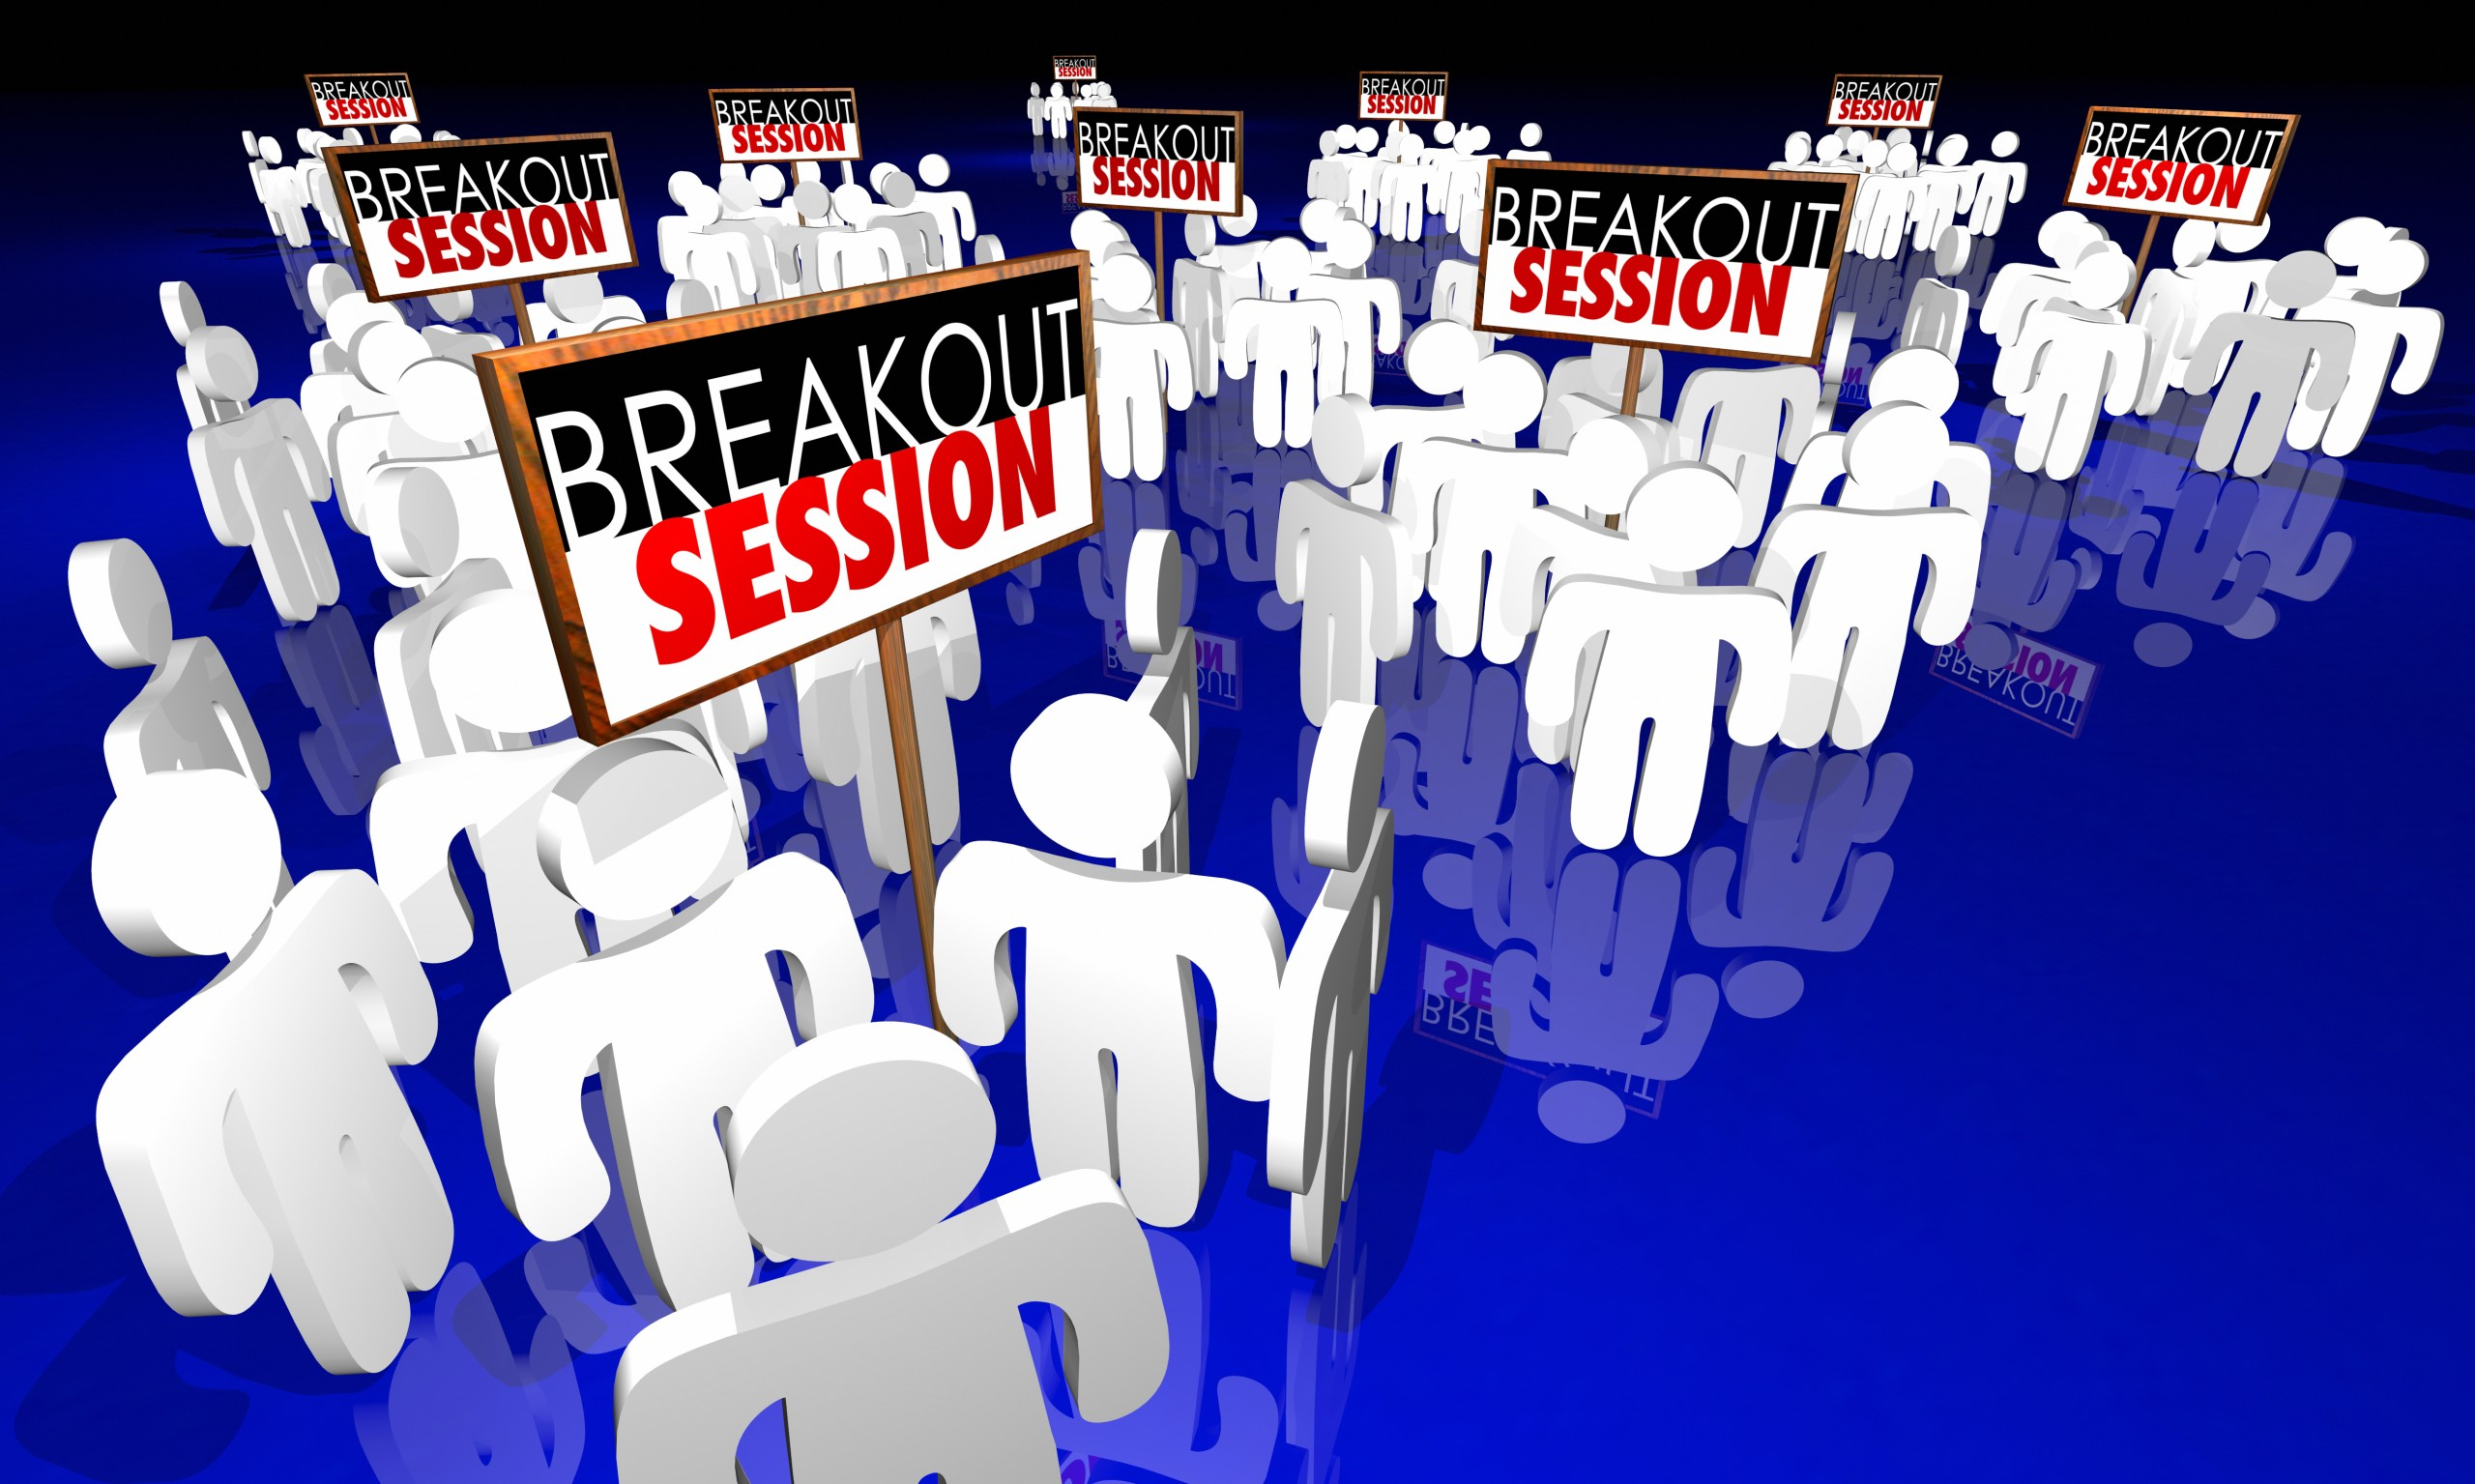 small team breakout sessions